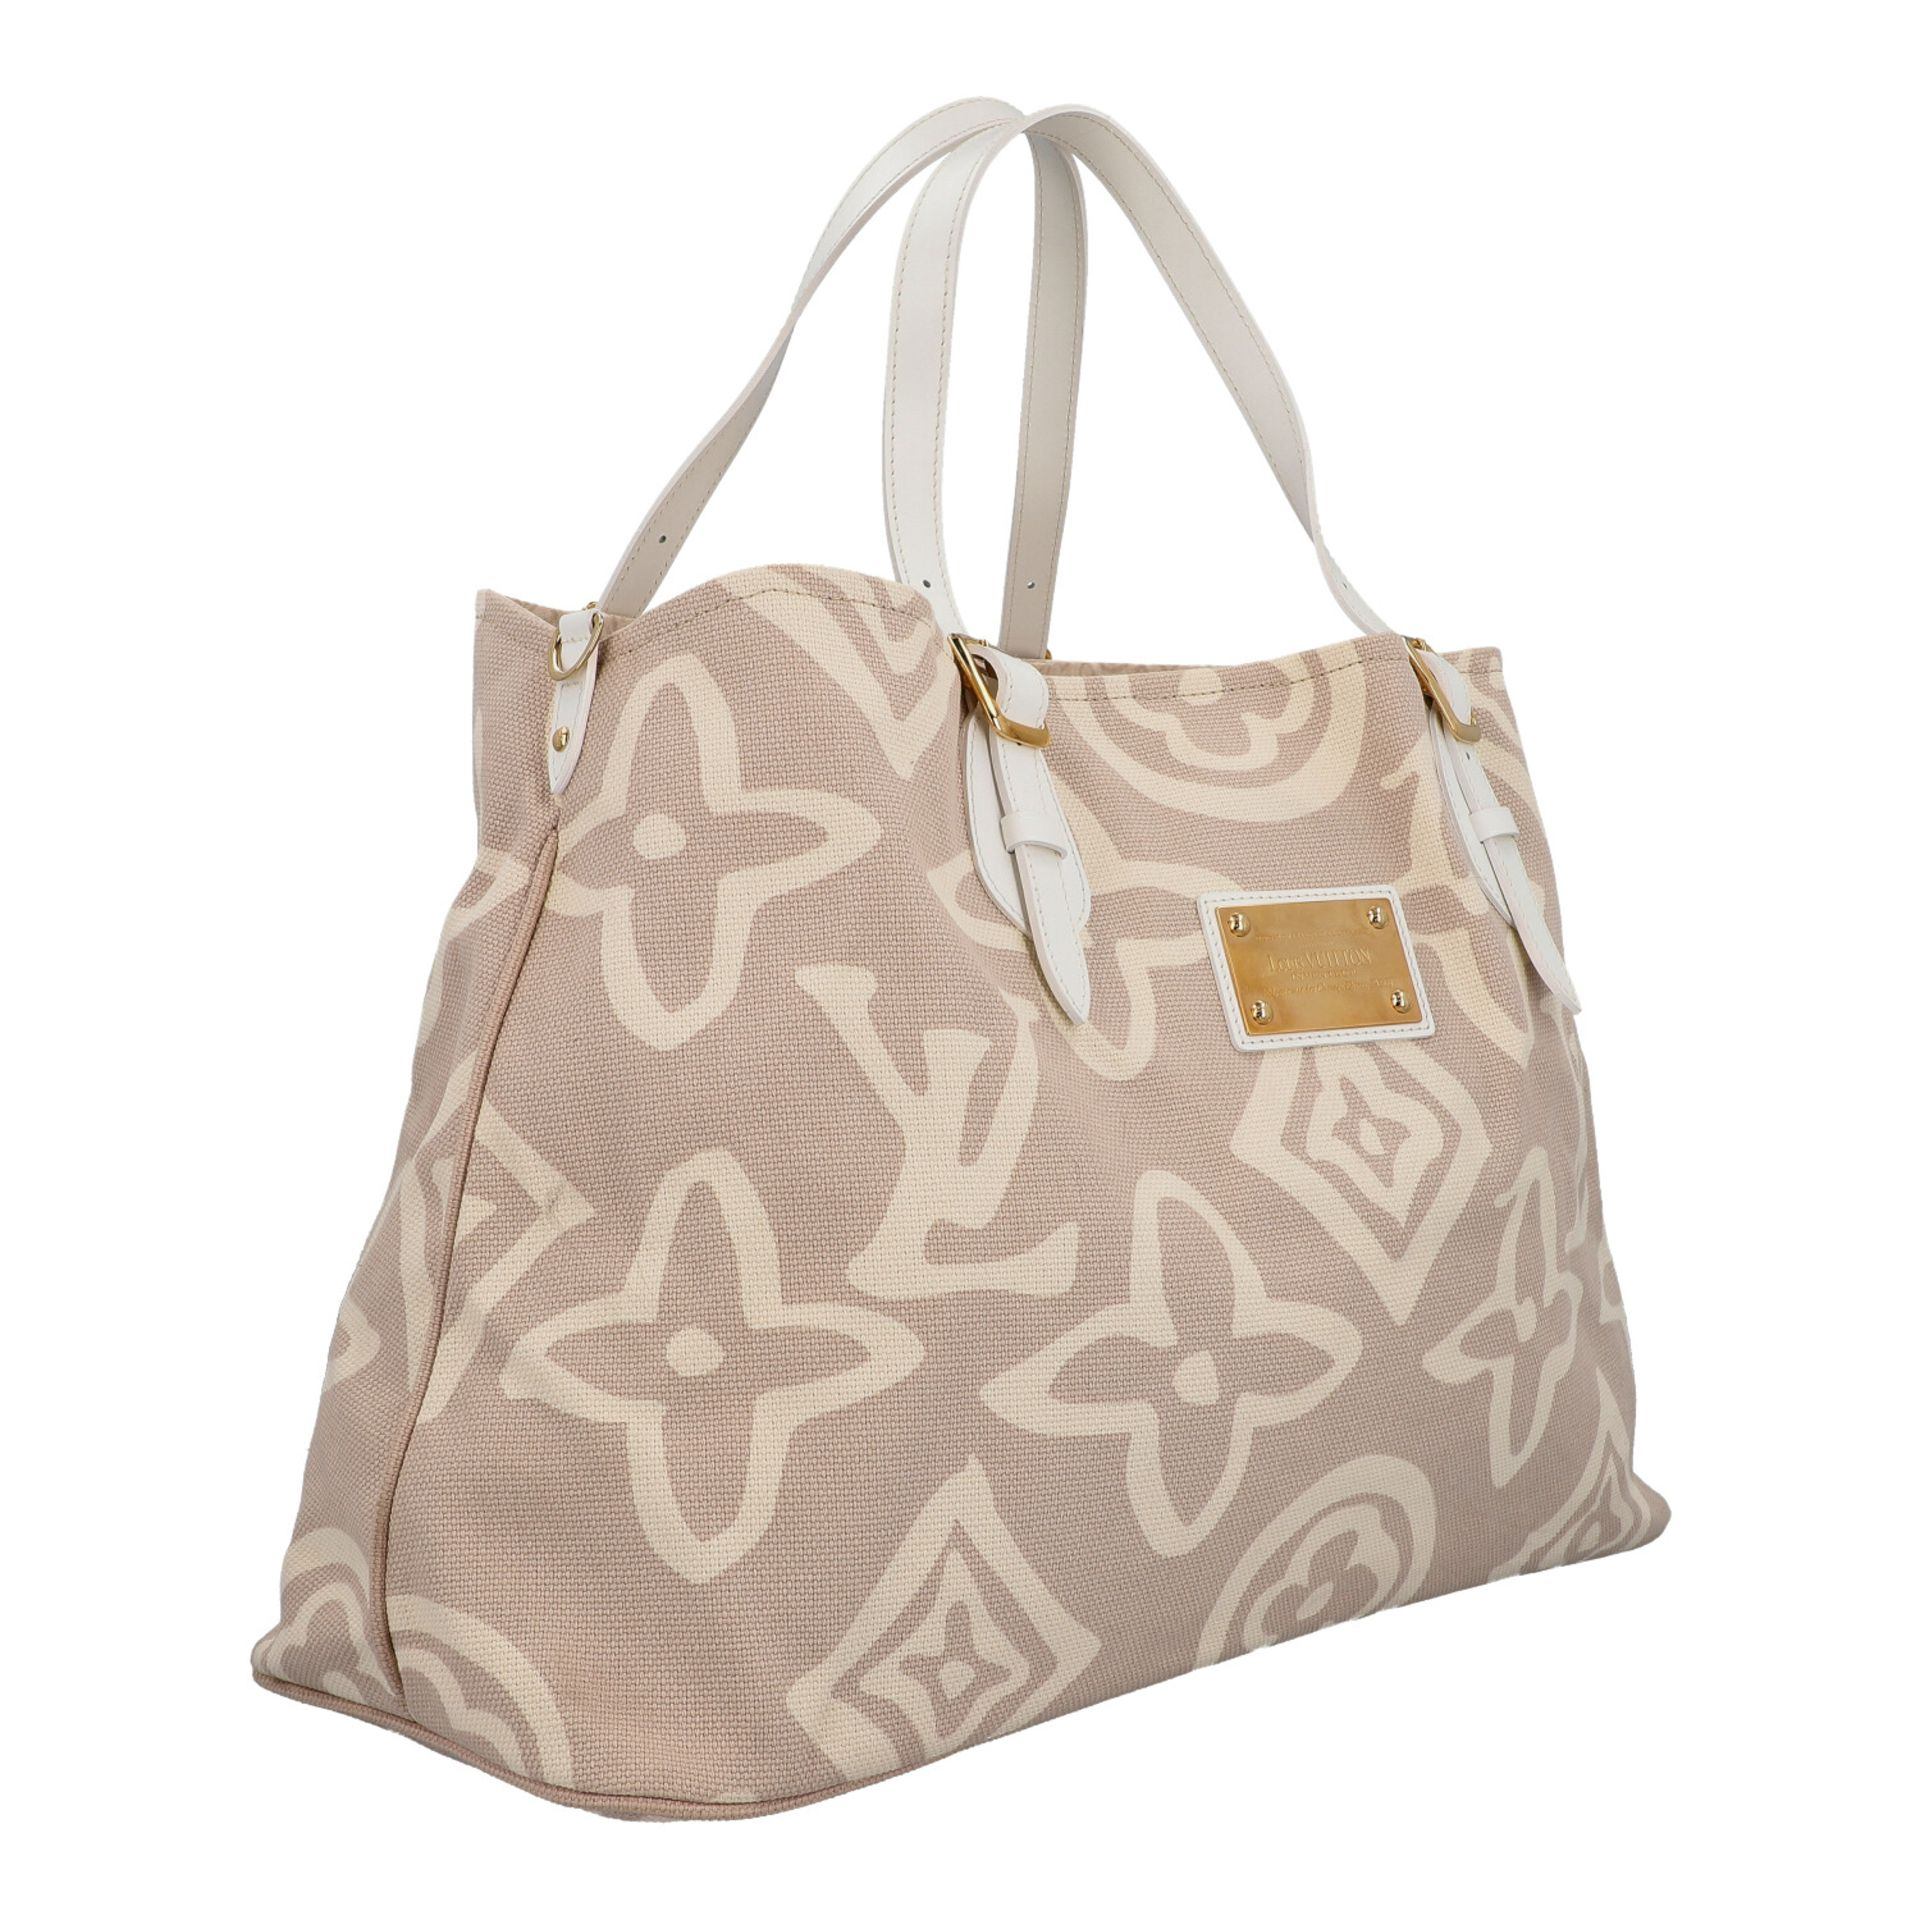 "LOUIS VUITTON Shopper ""TAHITIENNE GM"", Koll.: 2008 Designed by Marc Jacobs, inspiriert - Image 2 of 9"